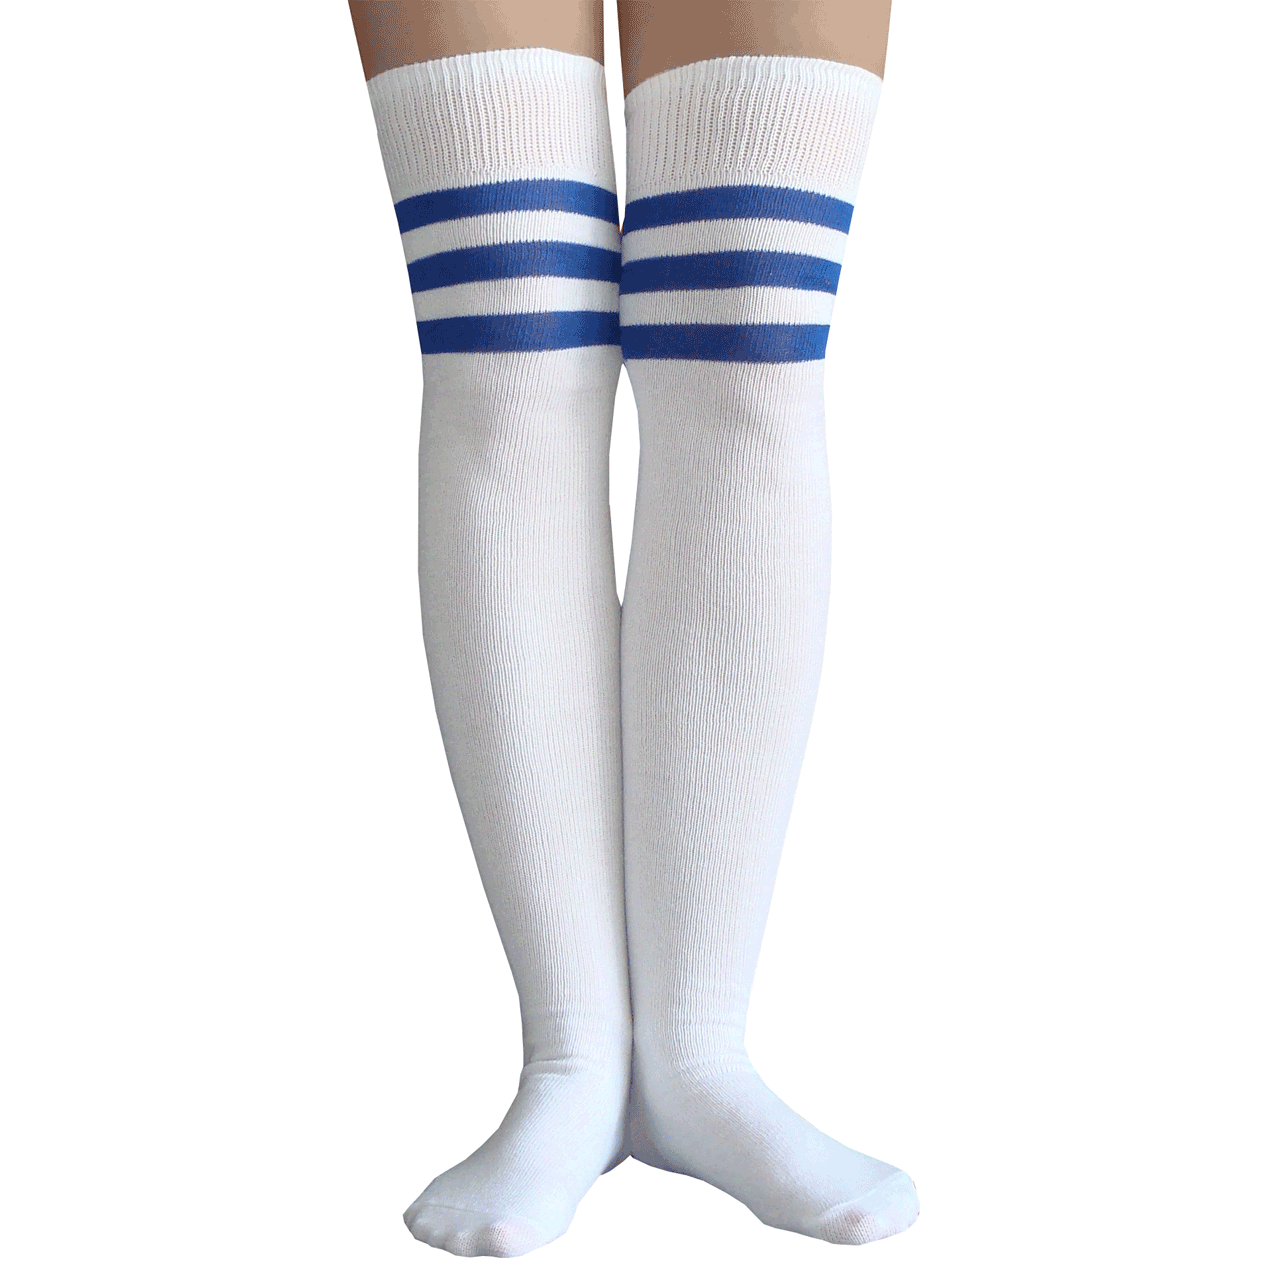 691bf782a White and royal blue athletic striped thigh high